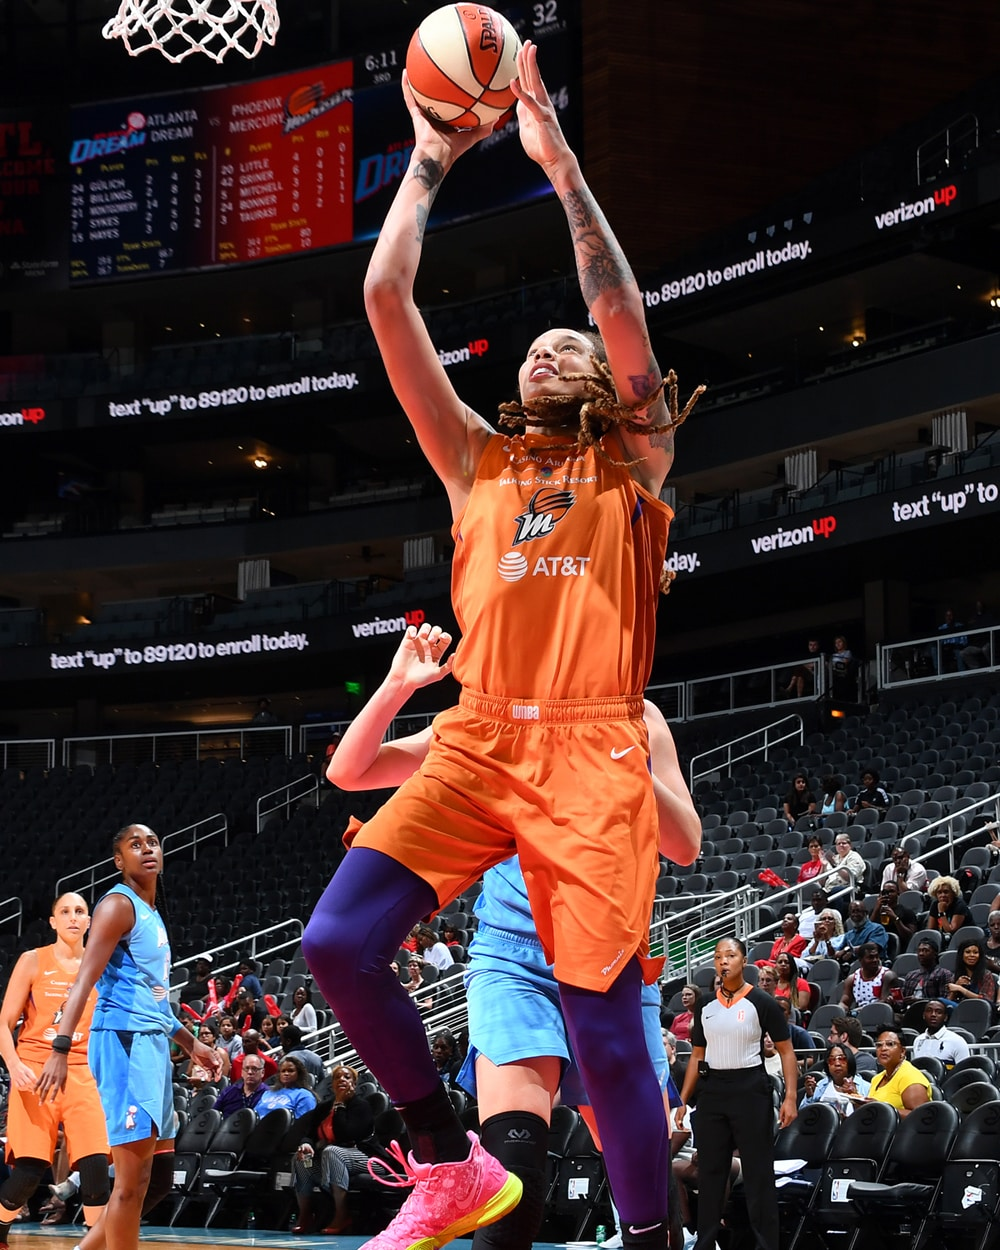 Brittney Griner with the layup